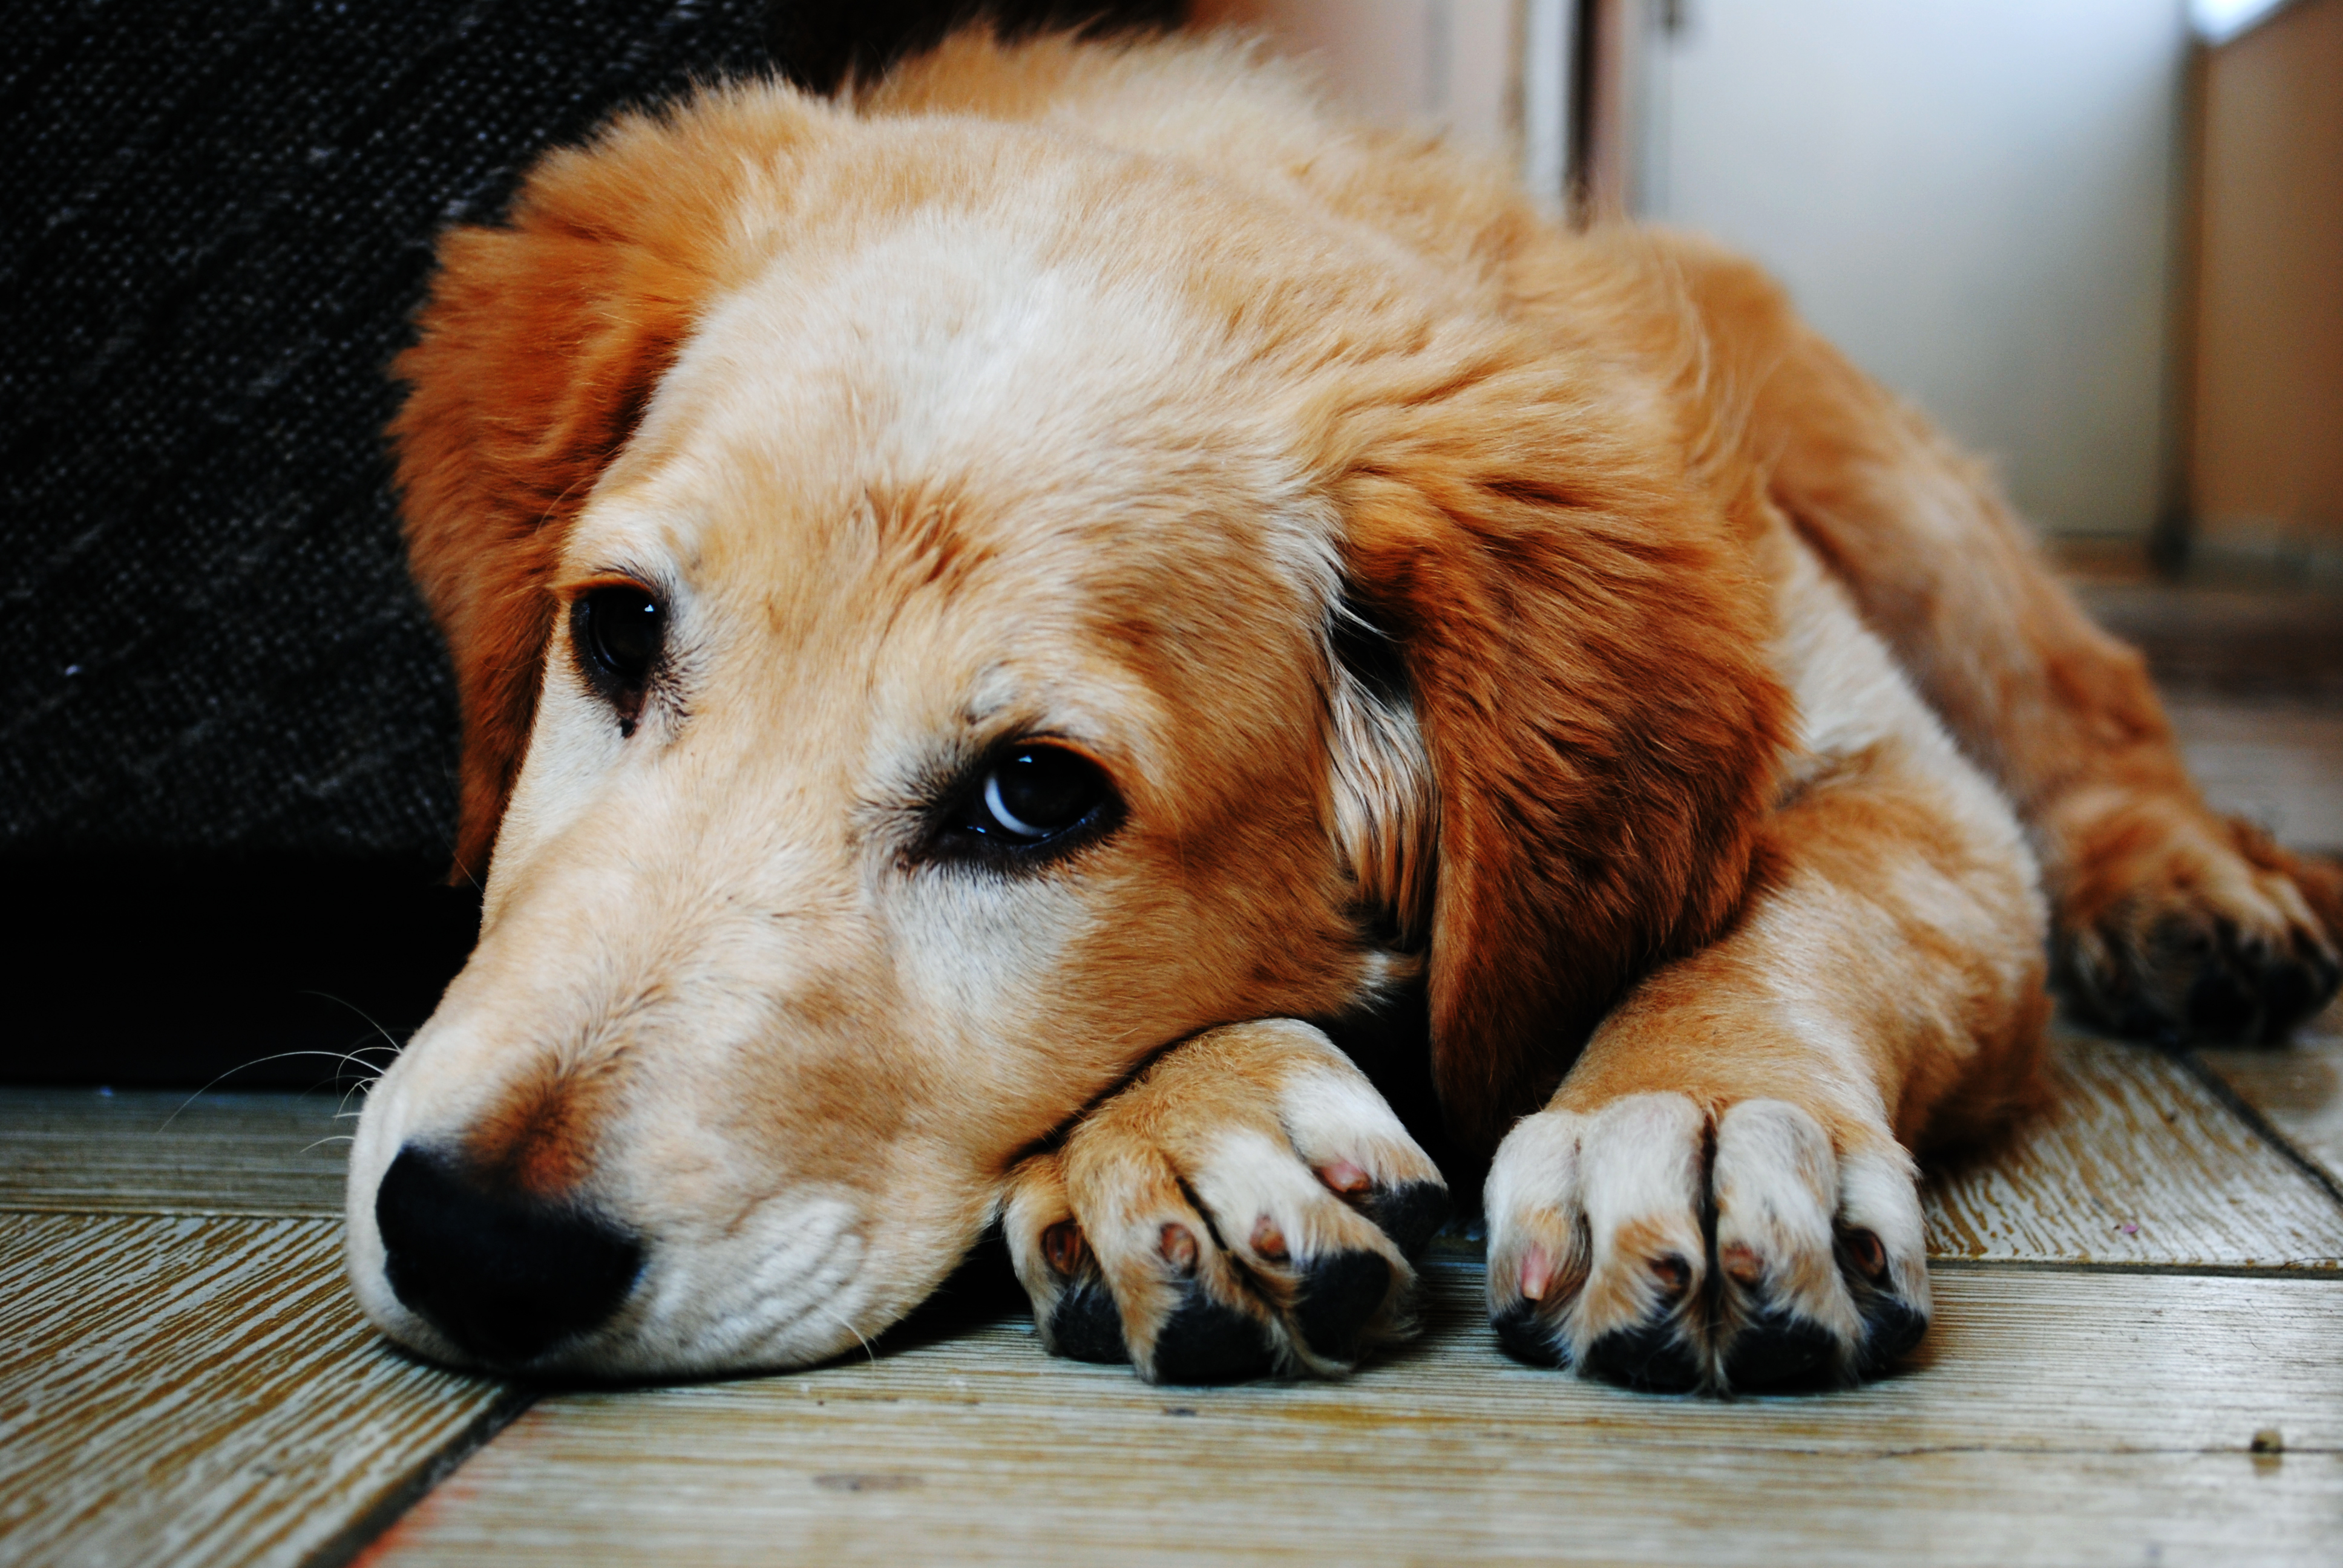 Dogs with Retinal Disease Help Researchers Find Effective Treatments